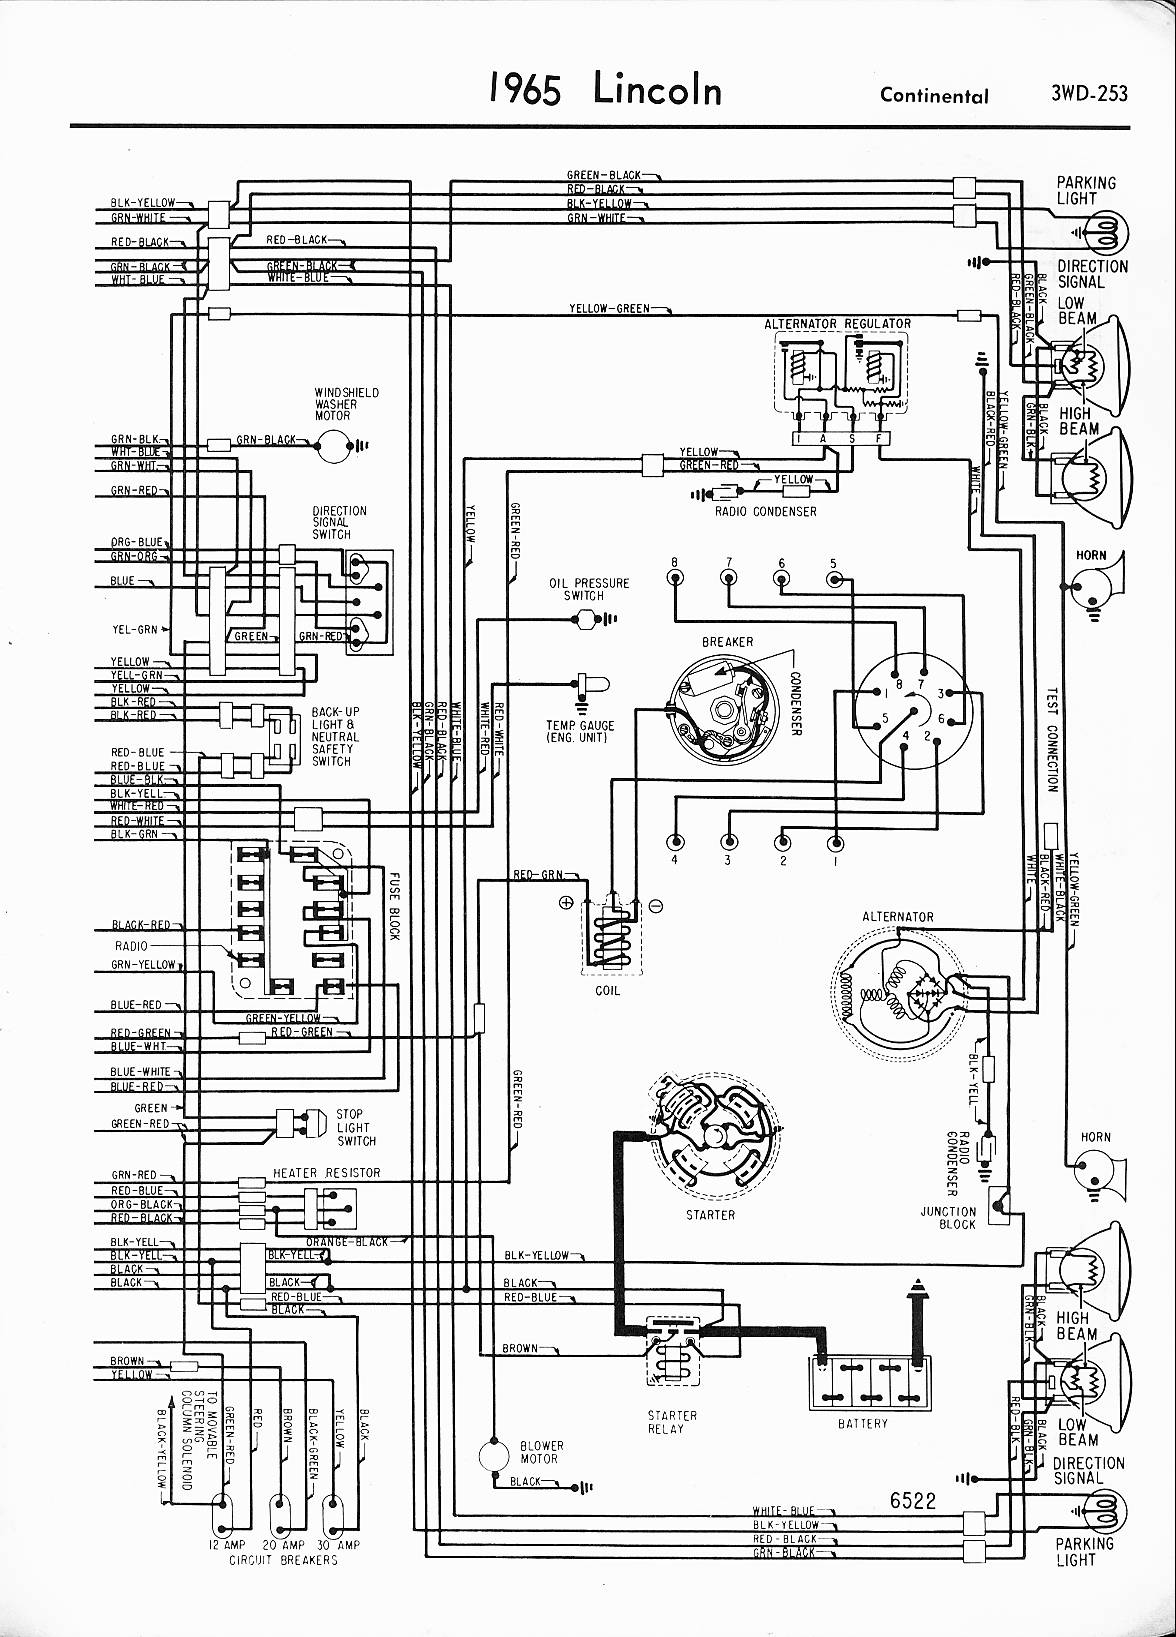 Distributor Wiring Diagram 1948 Lincoln Not Lossing Mallory Unilite Parts Electric Motor Todays Rh 11 6 10 1813weddingbarn Com Gm Hei Ignition Ford Electronic